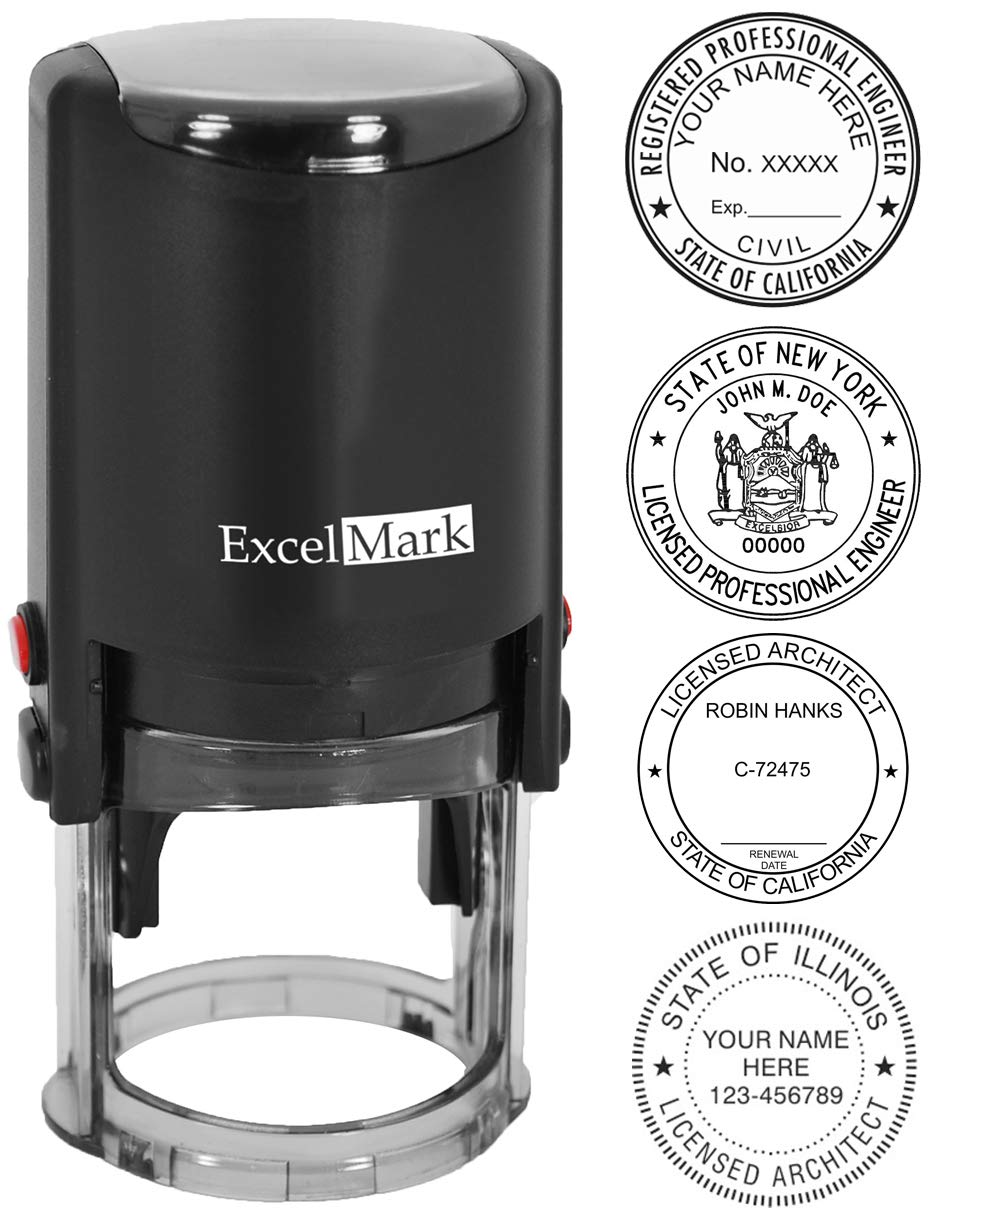 Self Inking Professional Stamp - Engineer / Architect by ExcelMark